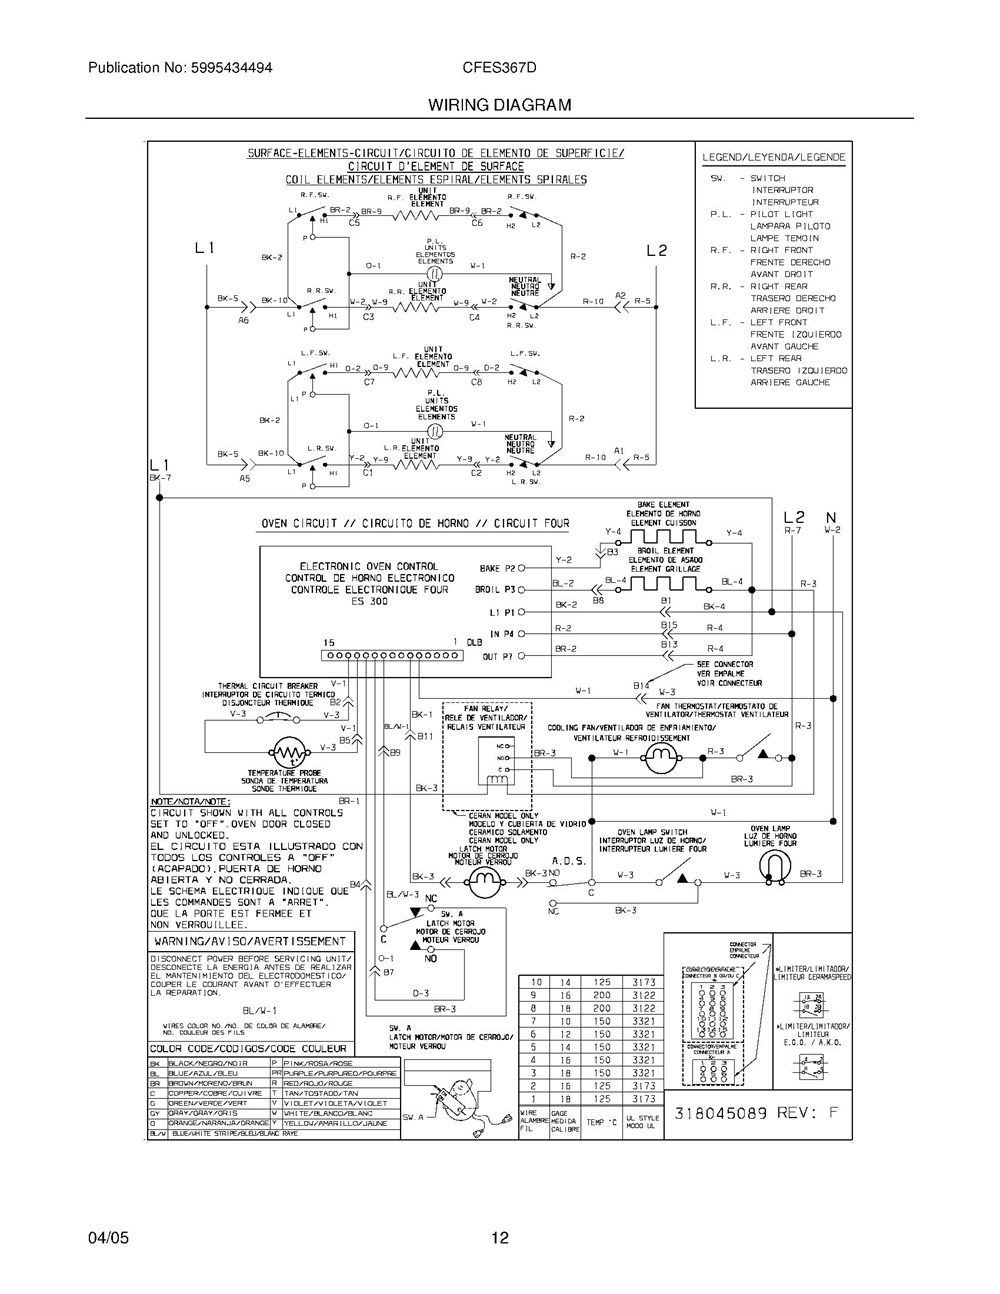 Cfes367ds3 Frigidaire Company Backguard 05body 07top Drawer 09door 01cover 10wiring Diagram